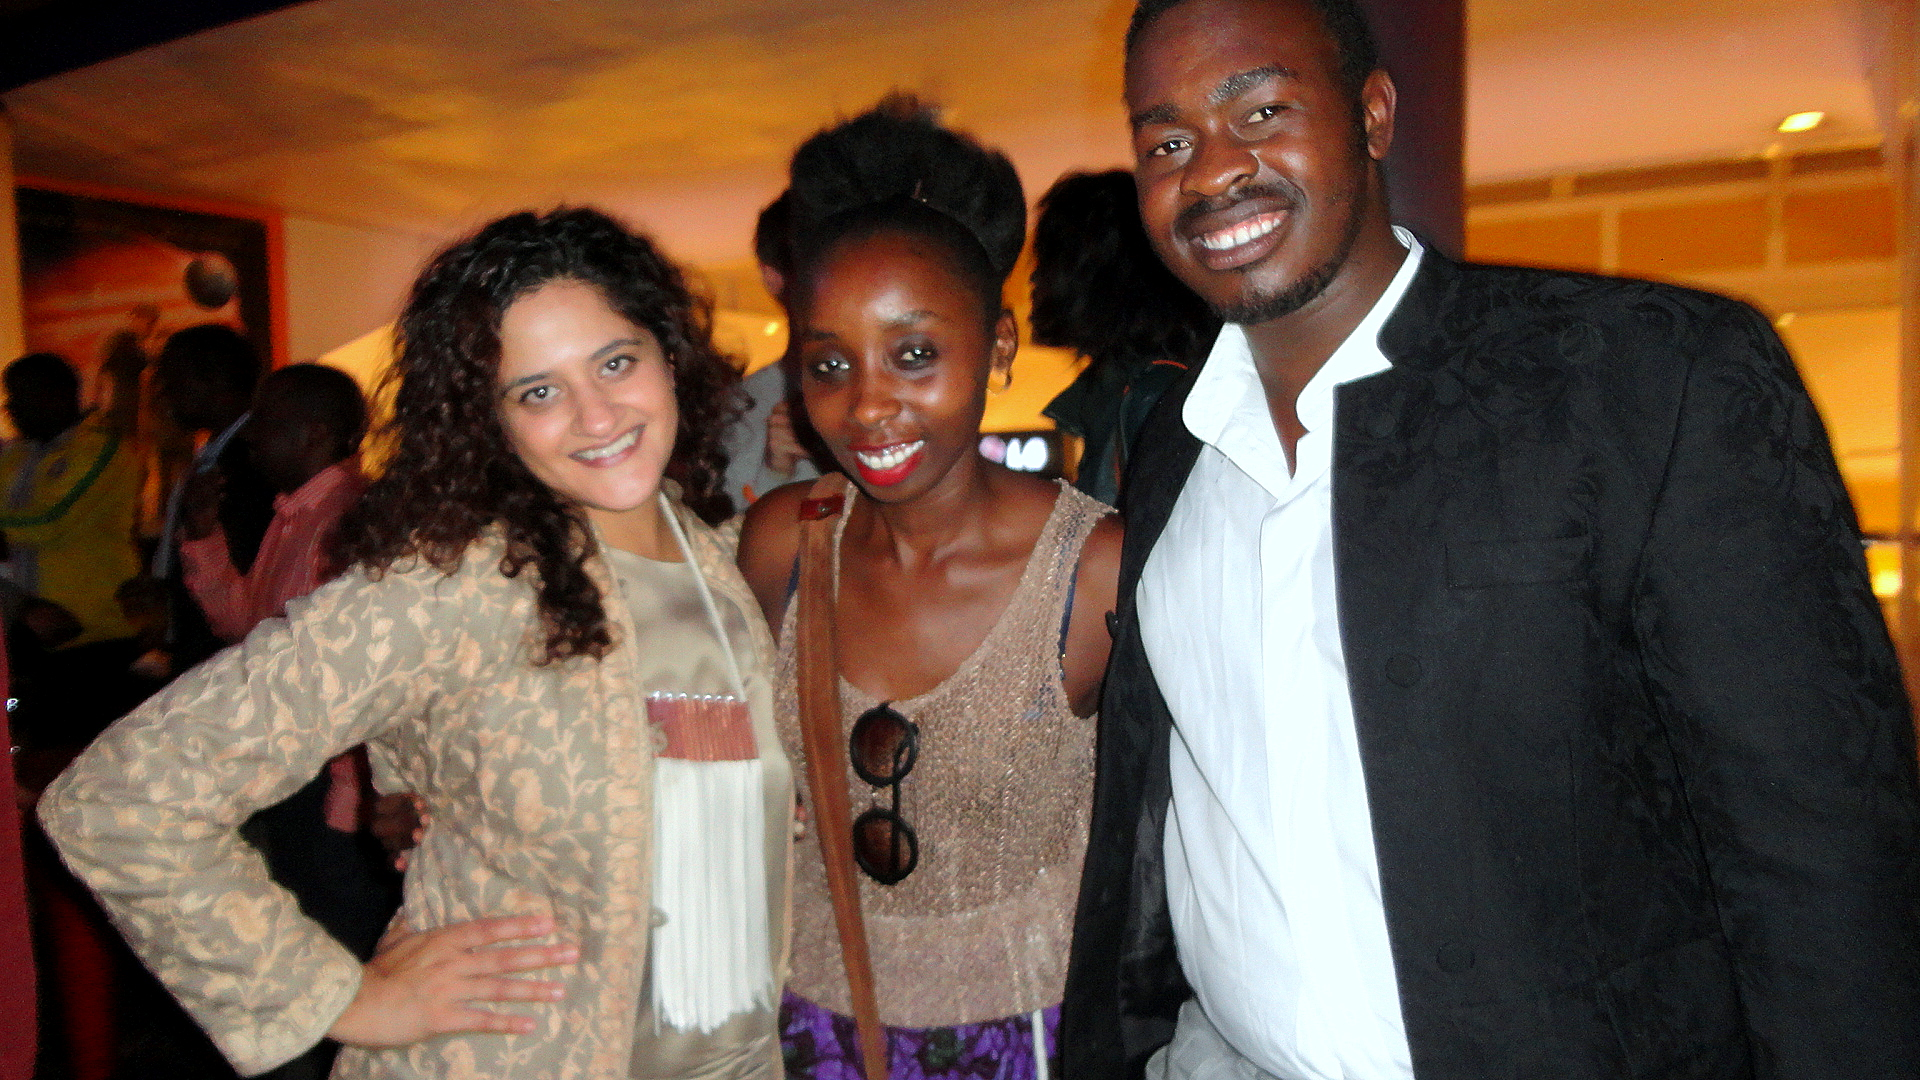 Two of the film's fashion designers, Ami and Namnyak with stylist Babu